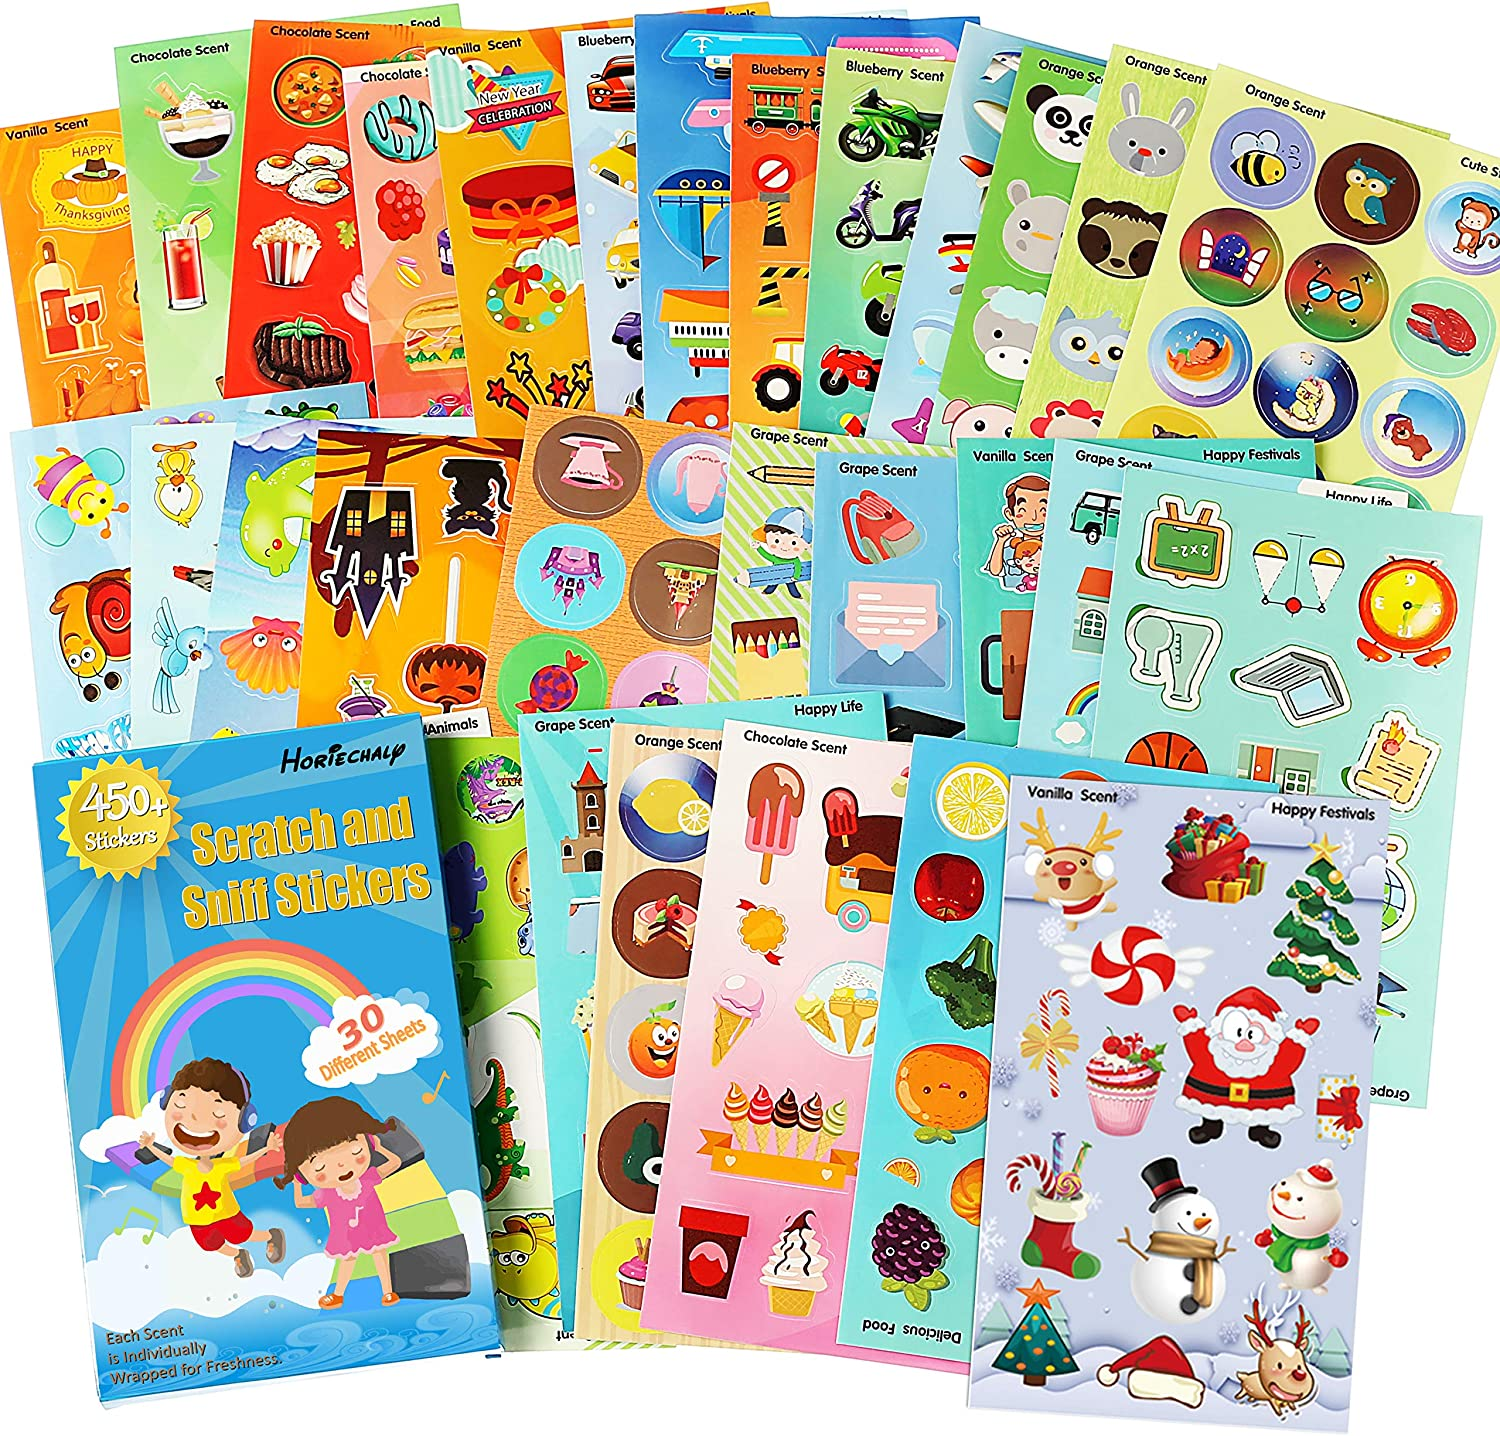 HORIECHALY Thanksgiving Day Sticker,30 Sheets no Repeat Pattern 6 Themes Scratch and sniff Stickers,Markers & Reward Sticker Fun!